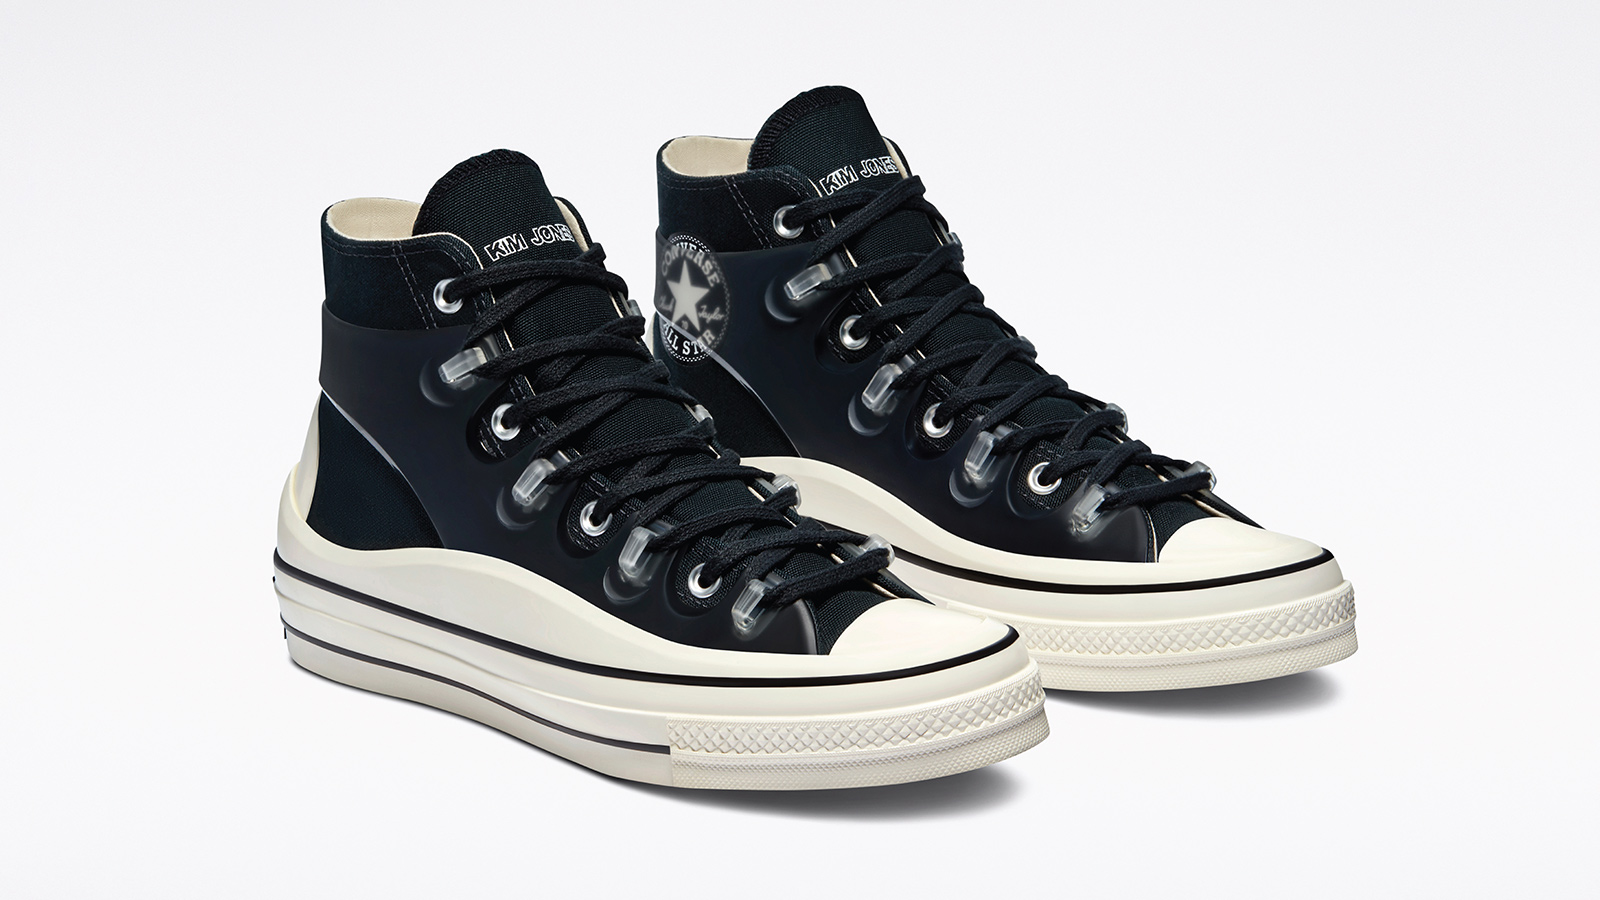 Converse x Kim Jones Collection